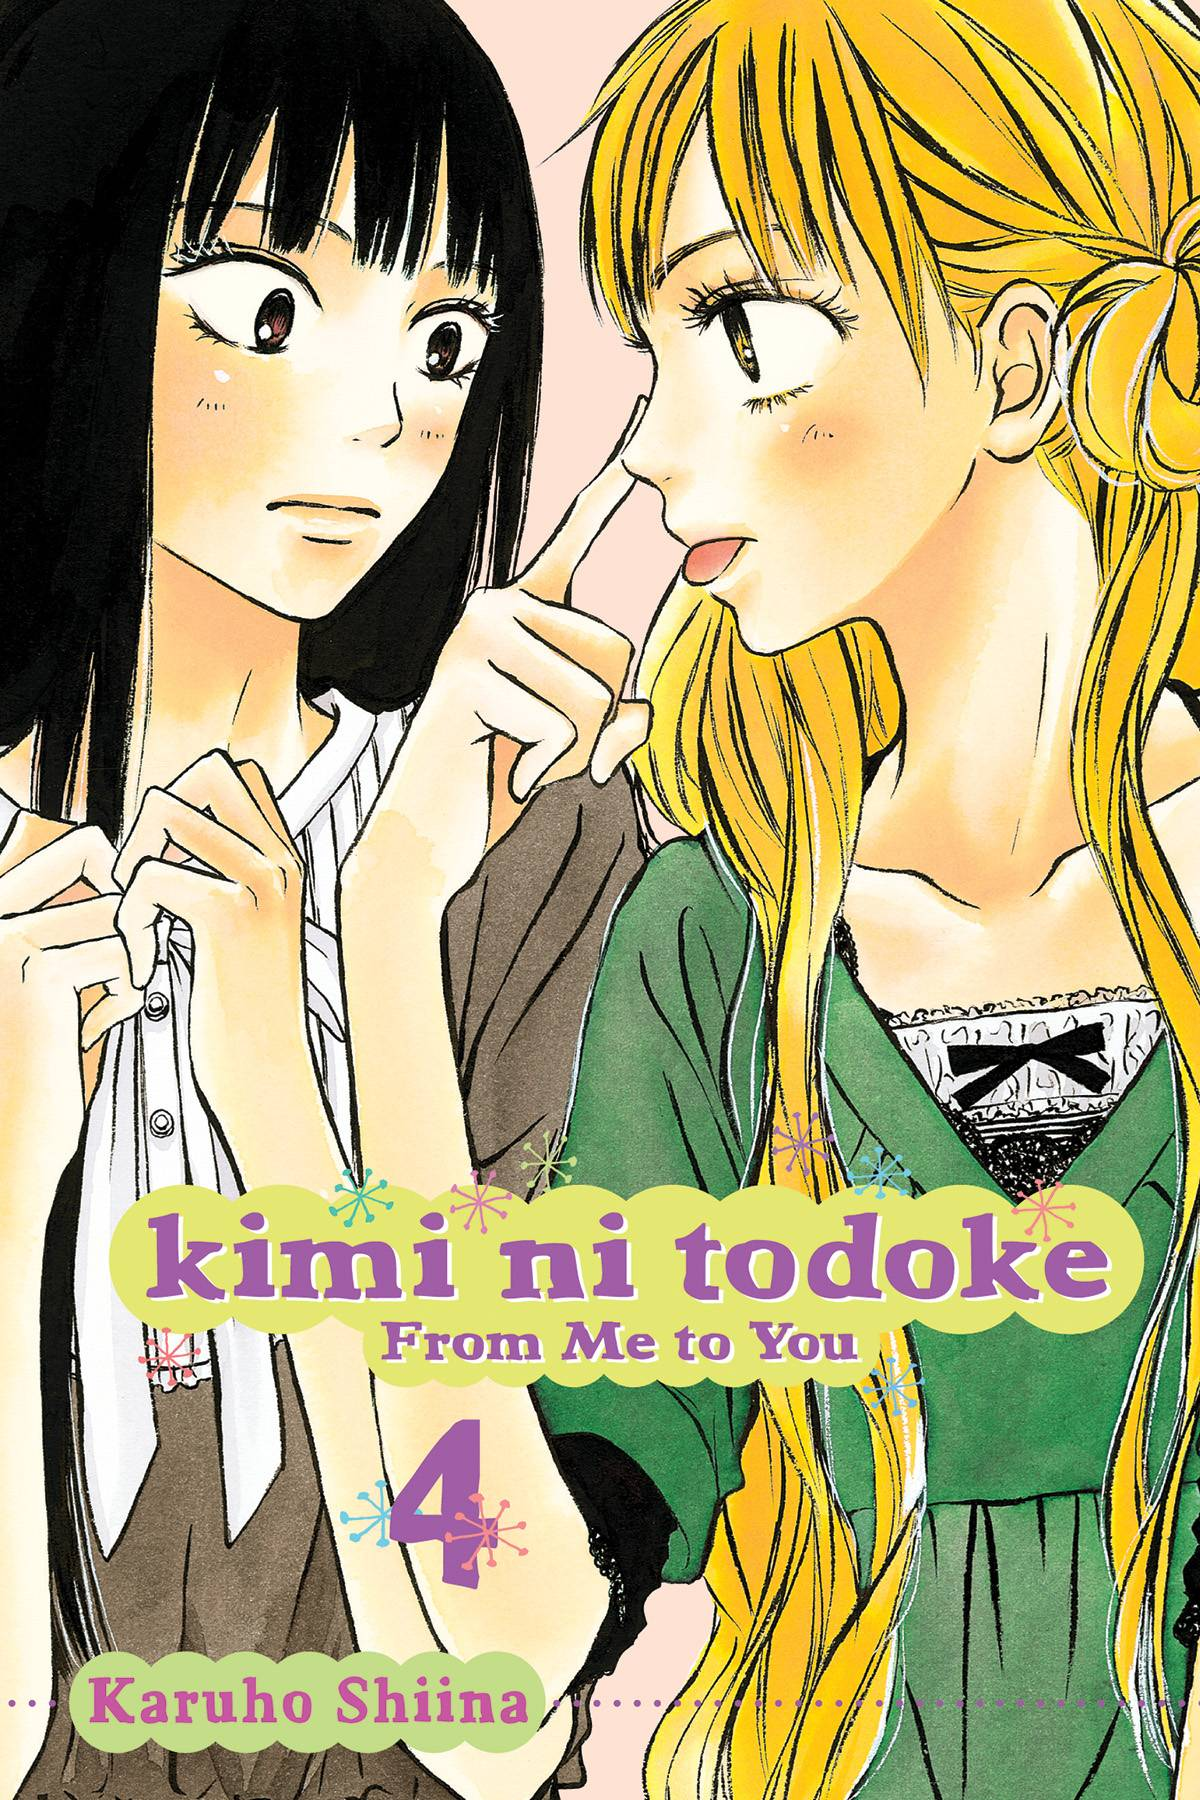 KIMI NI TODOKE GN VOL 04 FROM ME TO YOU